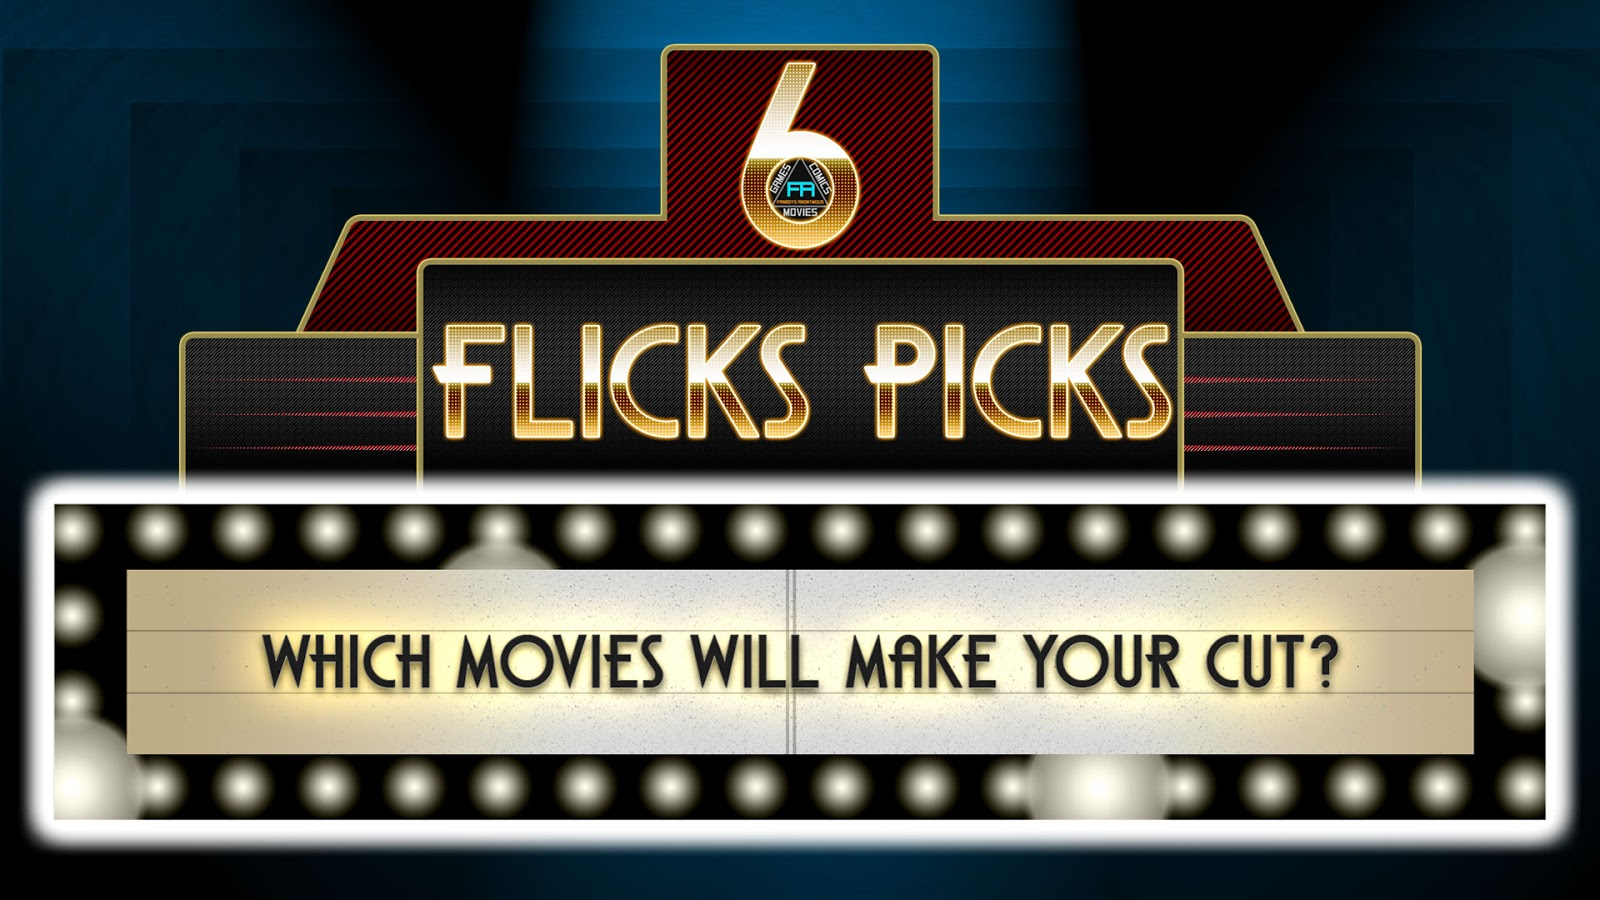 What movies are coming out January 2018 6 Flicks Picks